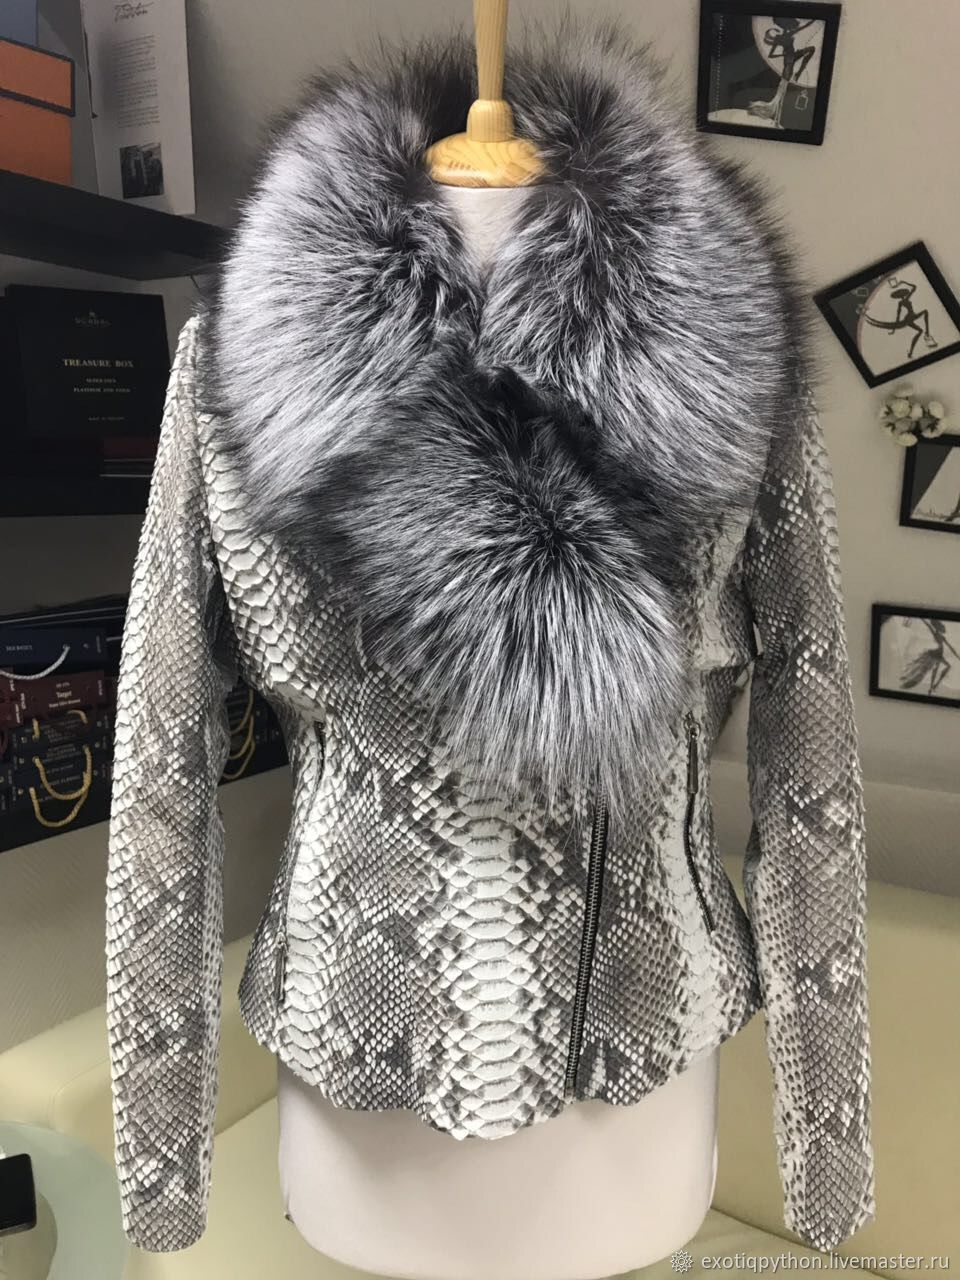 Python skin jacket insulated with silver Fox fur, Outerwear Jackets, Moscow,  Фото №1